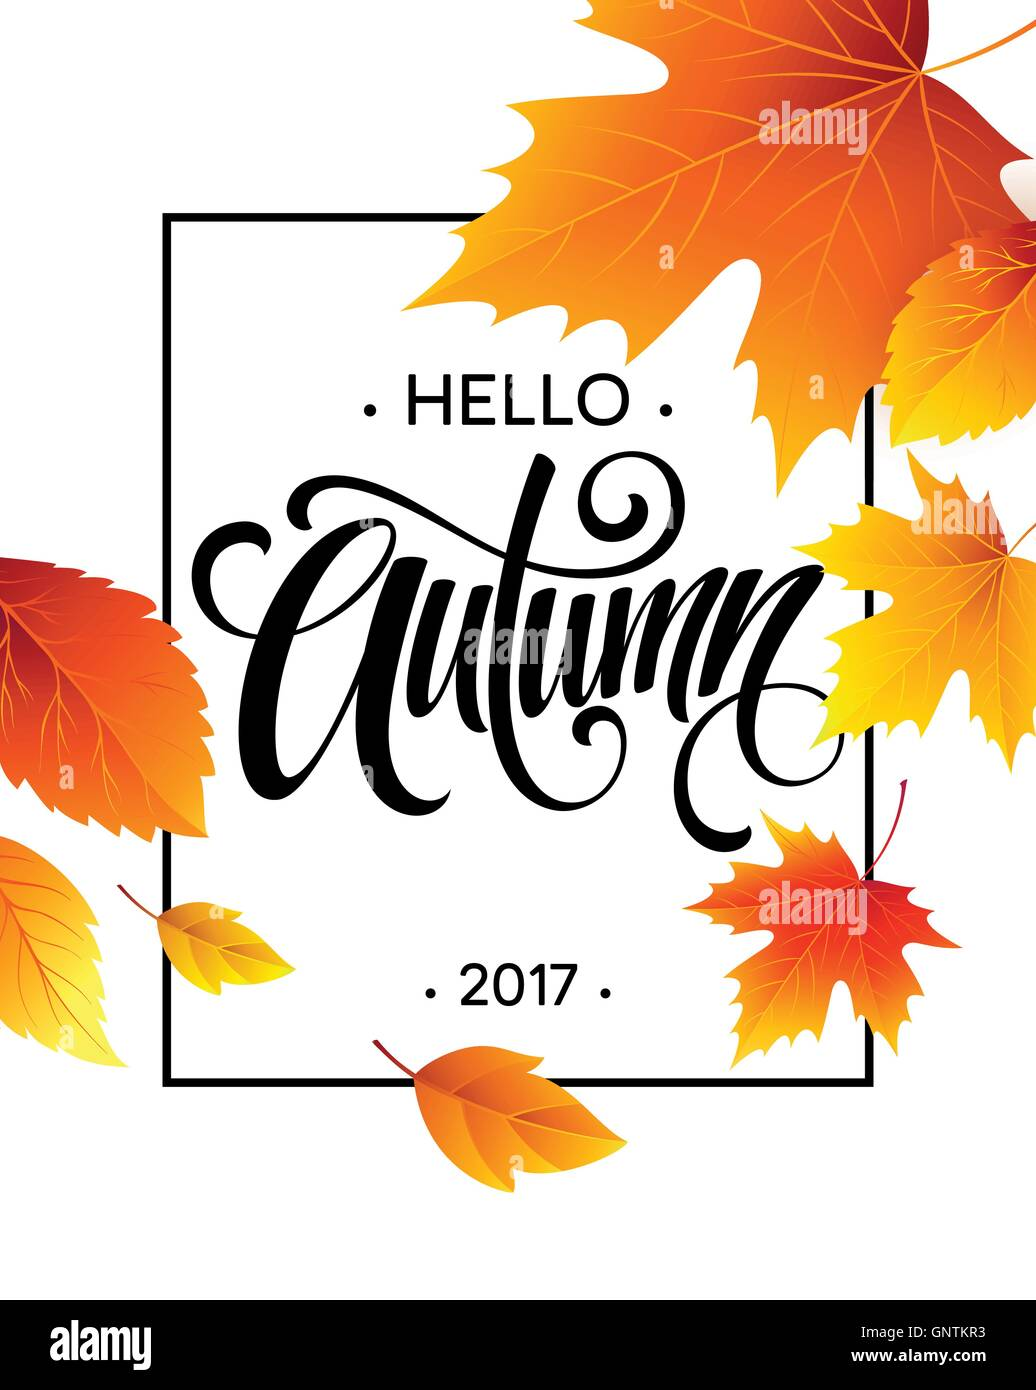 Autumn calligraphy. Background of Fall leaves. Concept ...